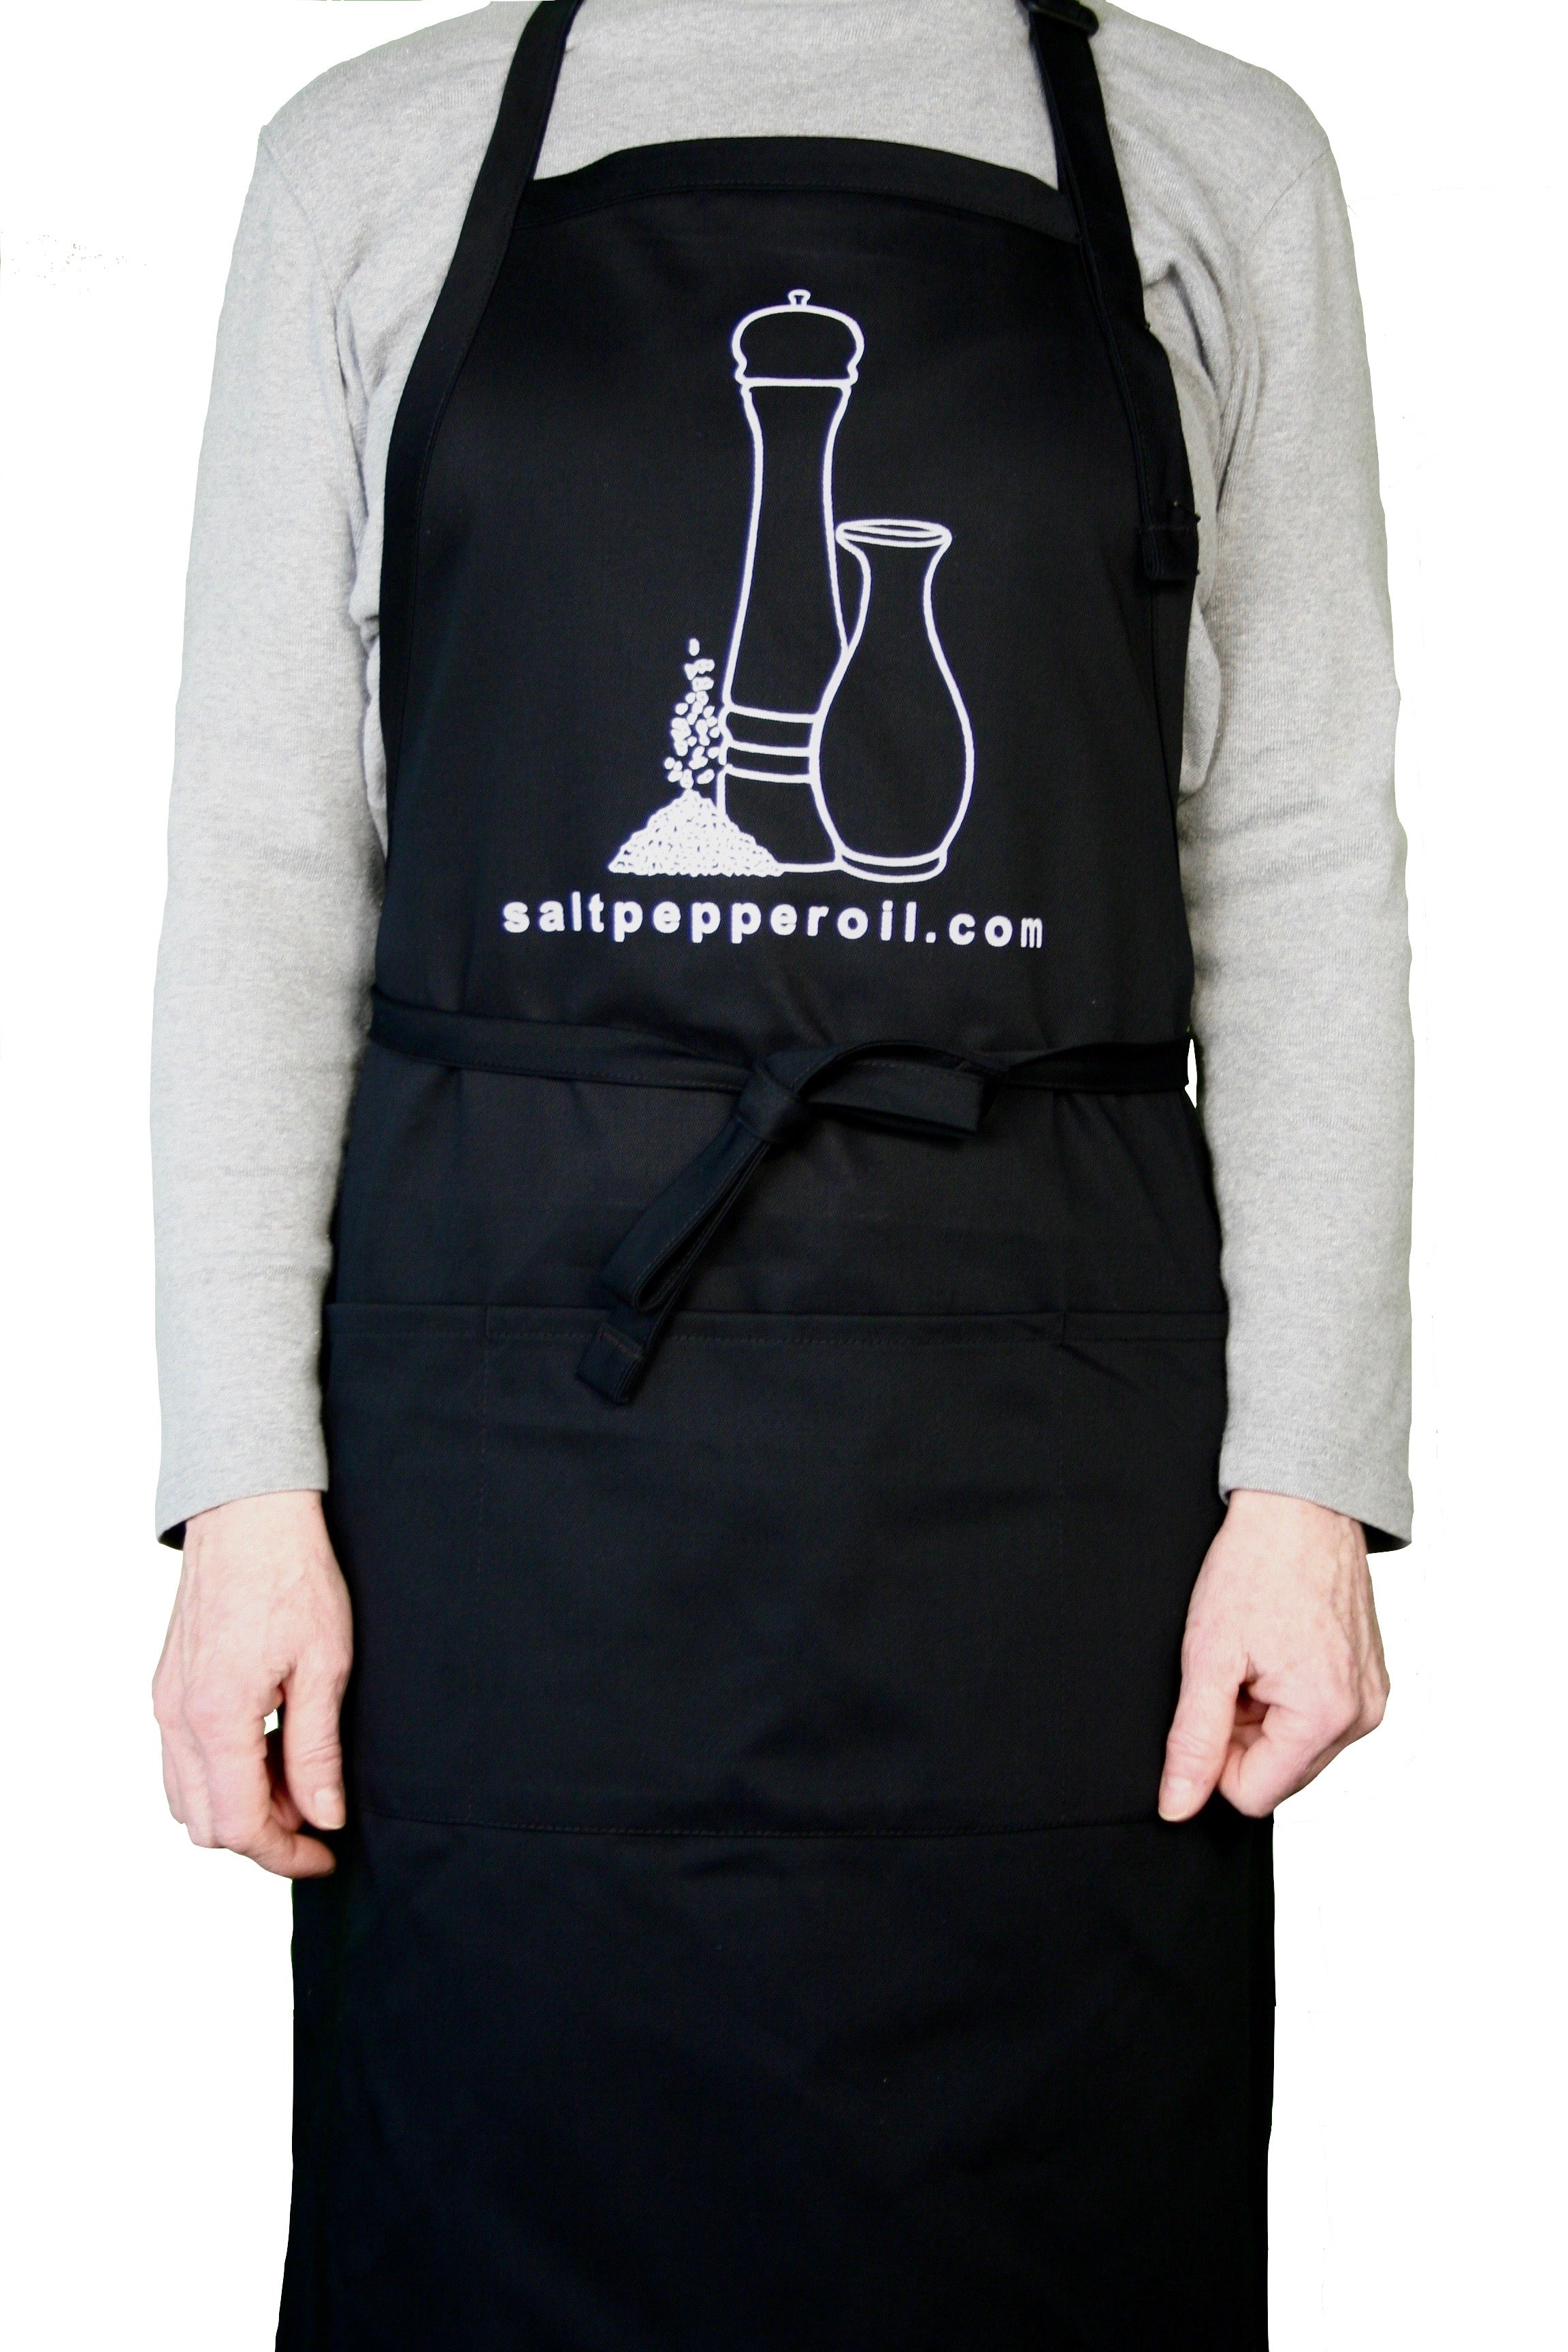 Full Length SPO Apron